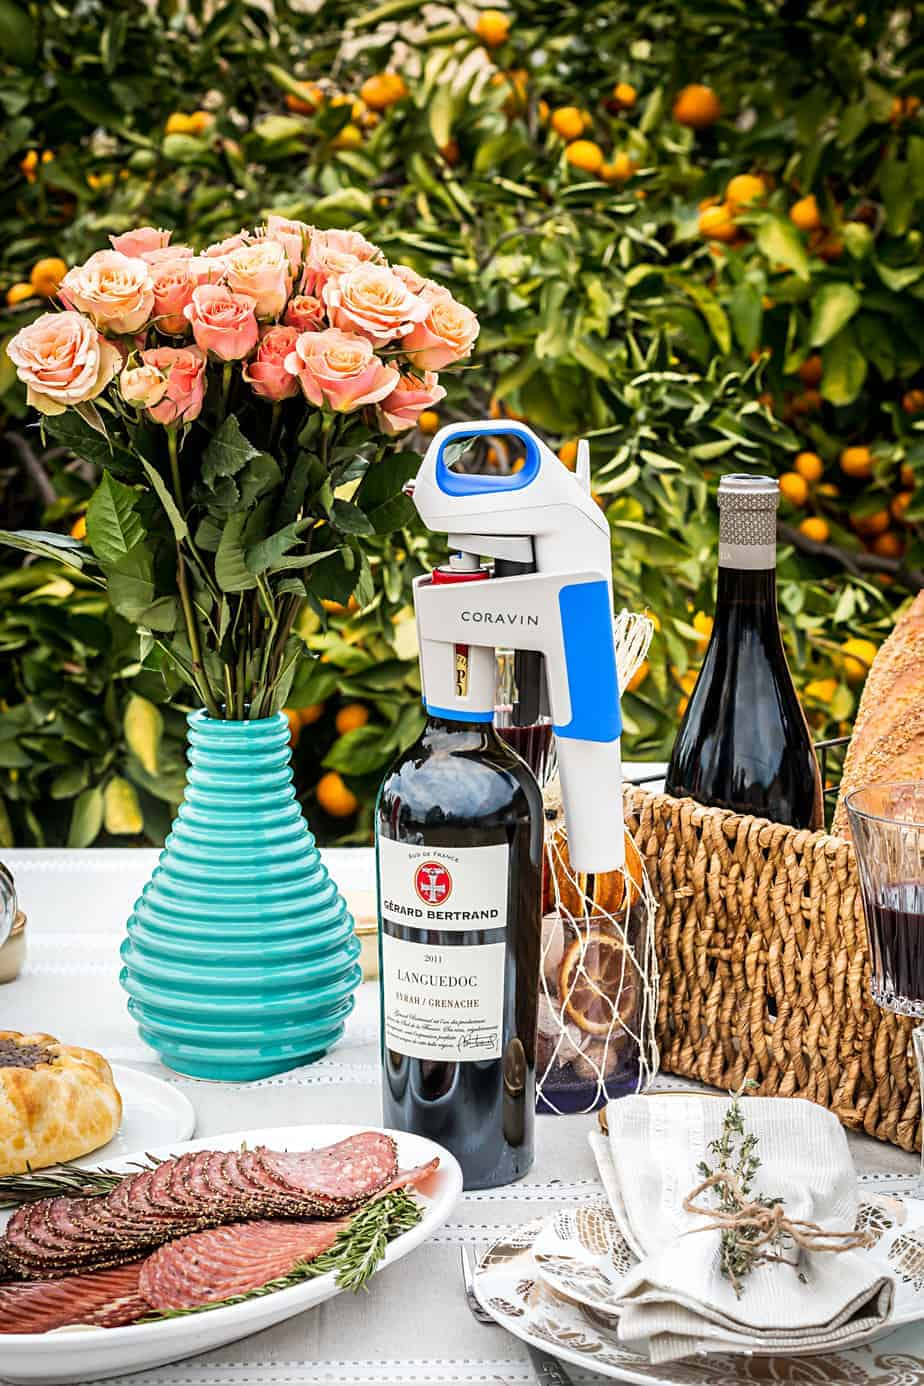 CORAVIN MODEAL ONE WINE SYSTEM REVIEW